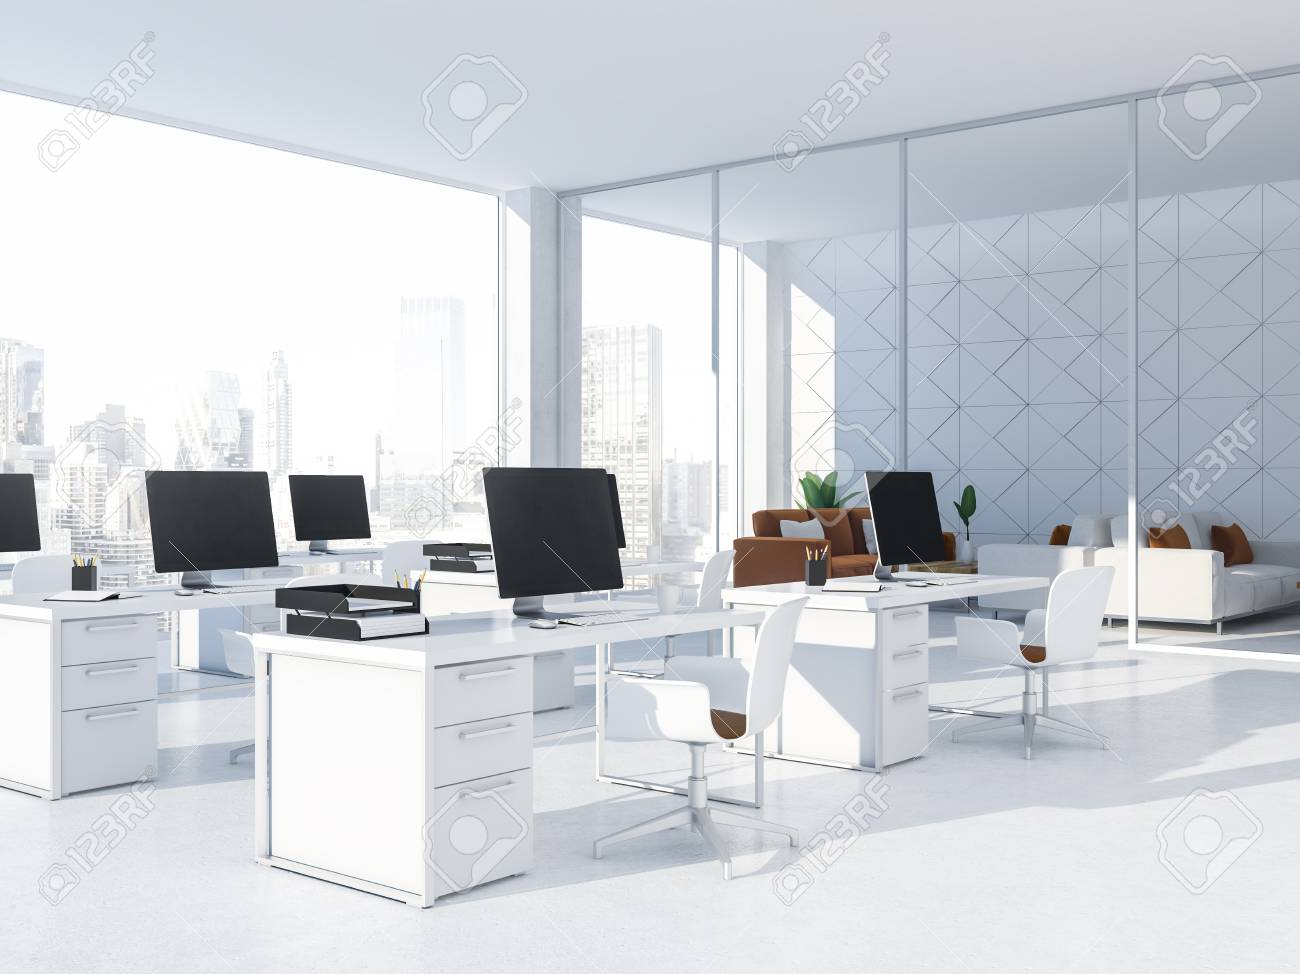 Modern white office interior with rows of white computer desks..